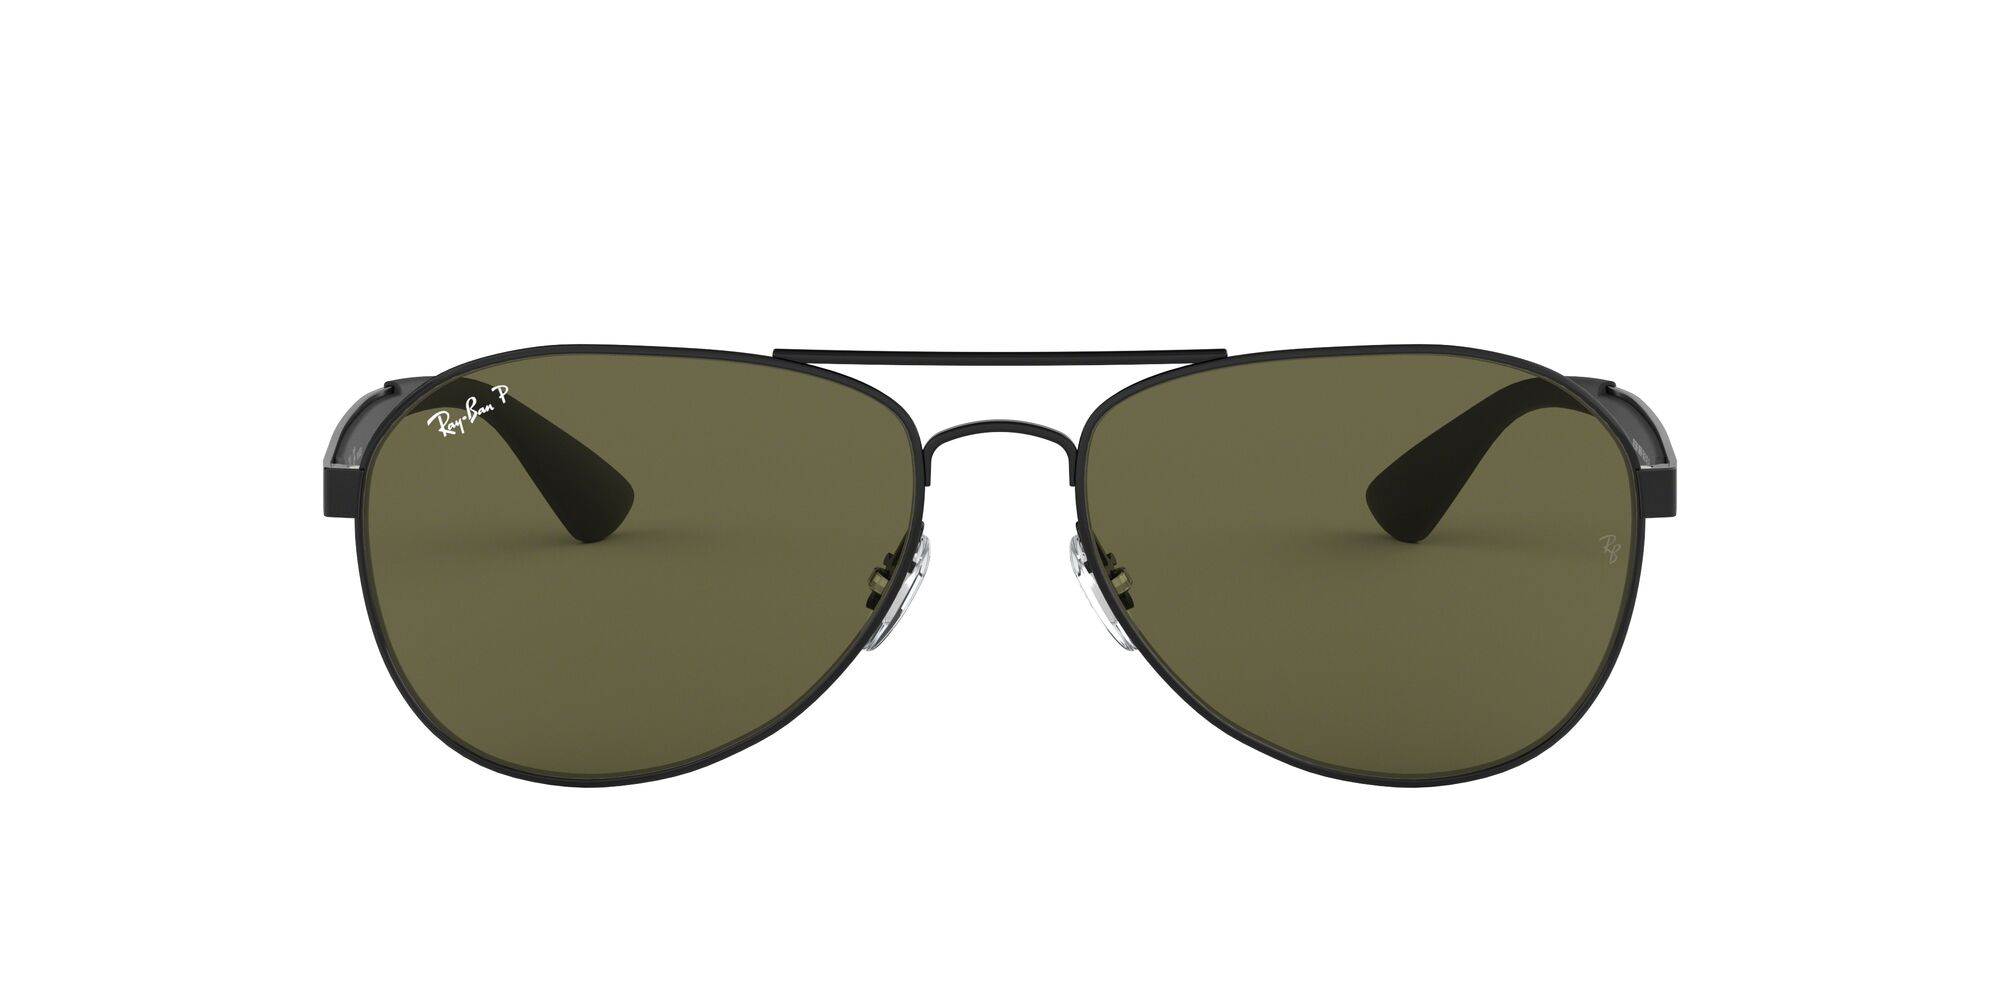 Front Ray-Ban Ray-Ban 0RB3549 006/9A 58/16 Zwart/Groen